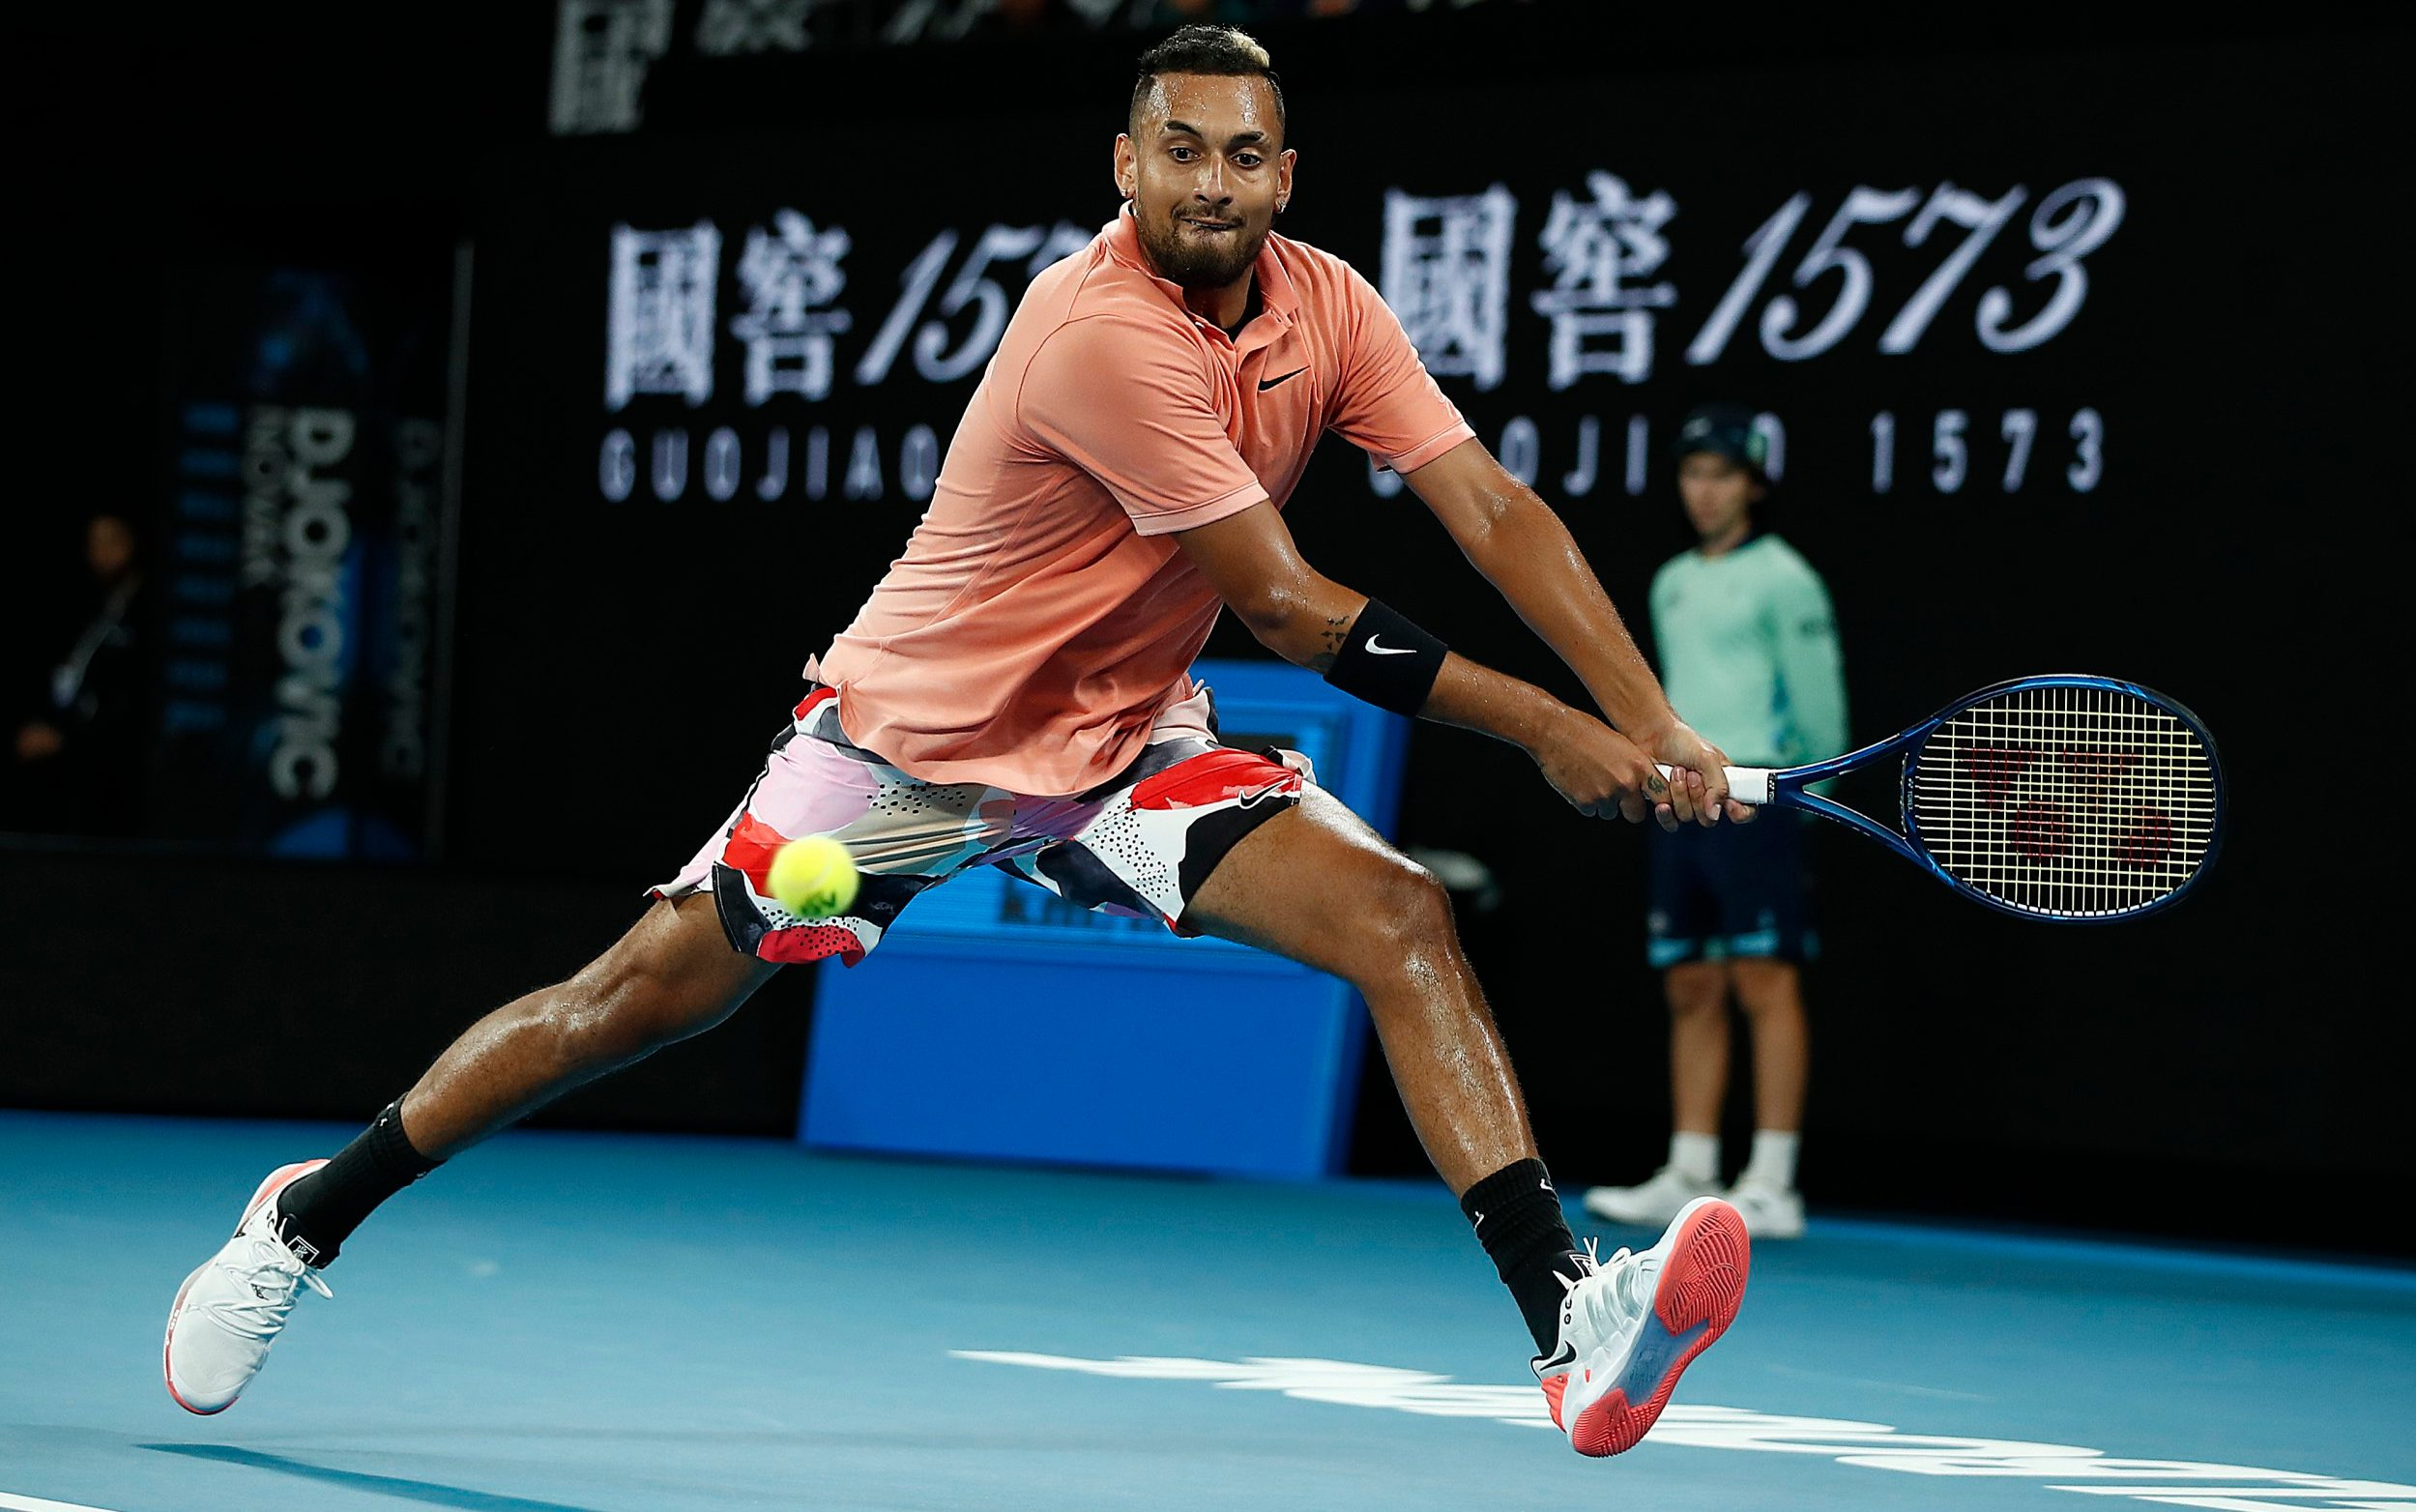 NBA superstar D'Angelo Russell lets Nick Kyrgios know he's watching him at the Australian Open